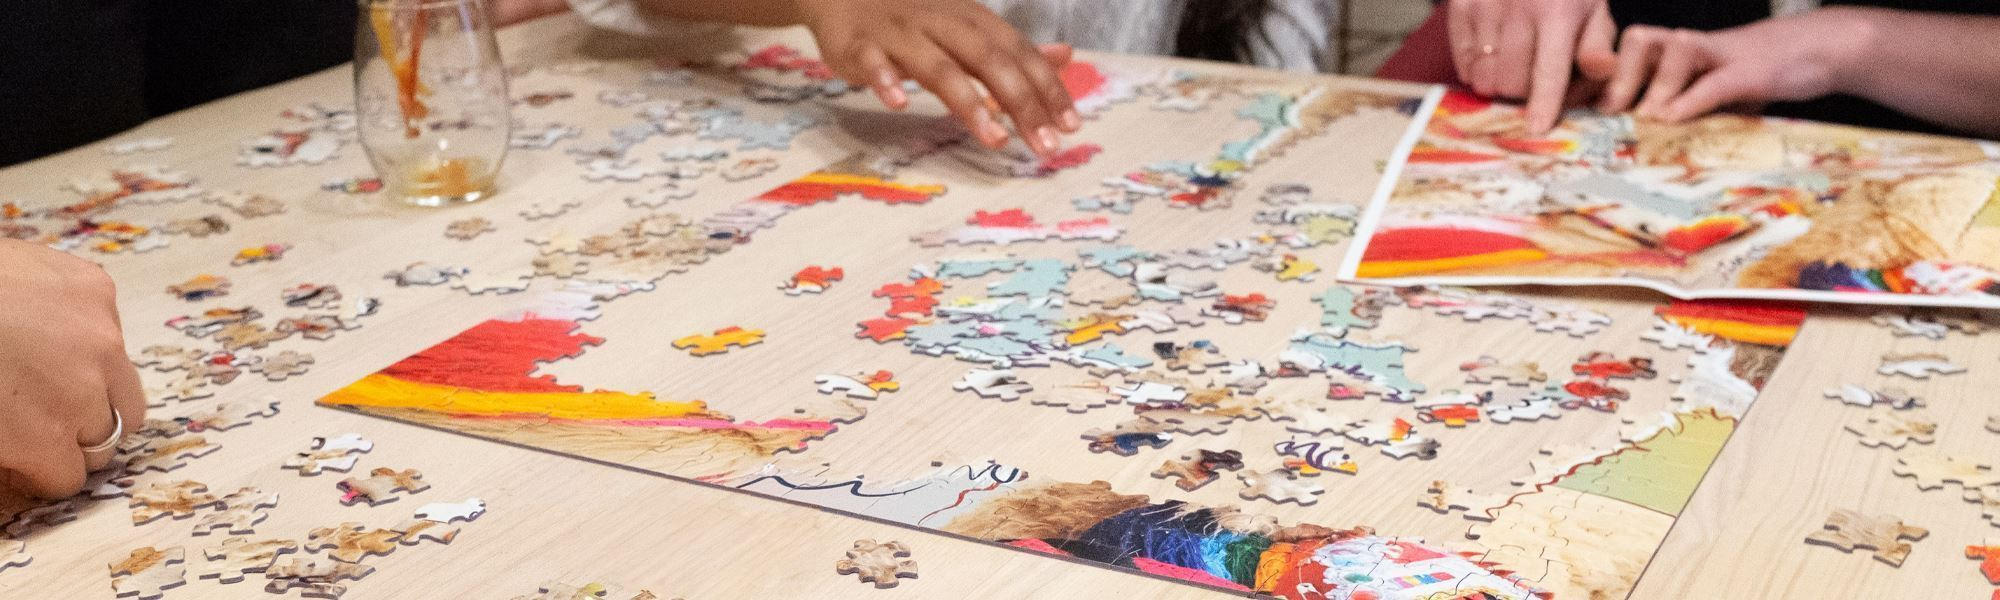 How To Host A Jigsaw Puzzle Party For Grownups